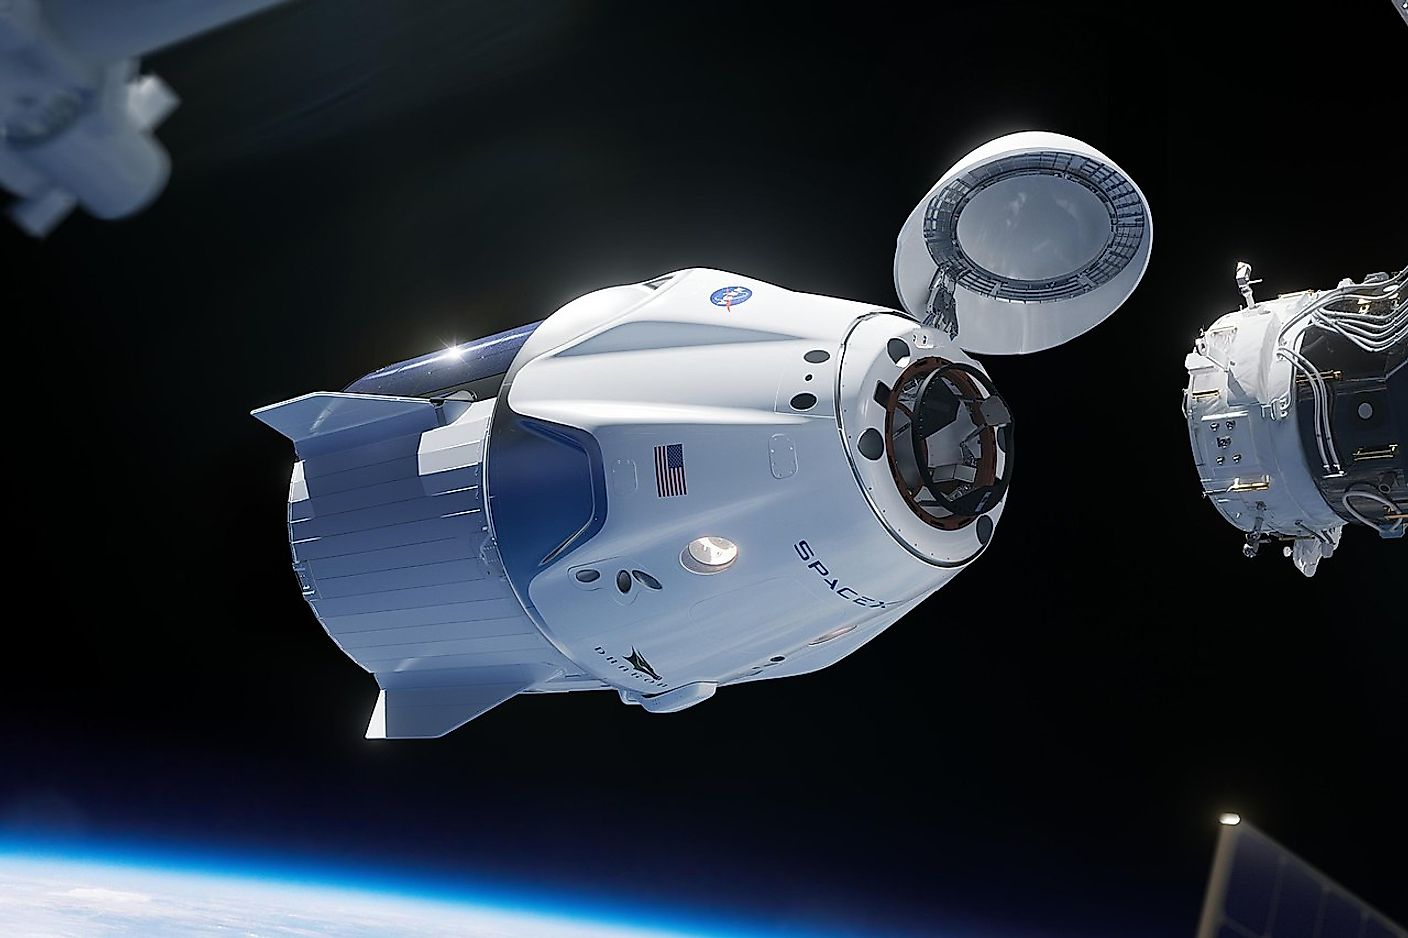 A rendering of a SpaceX Crew Dragon spacecraft approaching the International Space Station. Image credit: NASA/SpaceX/Public domain